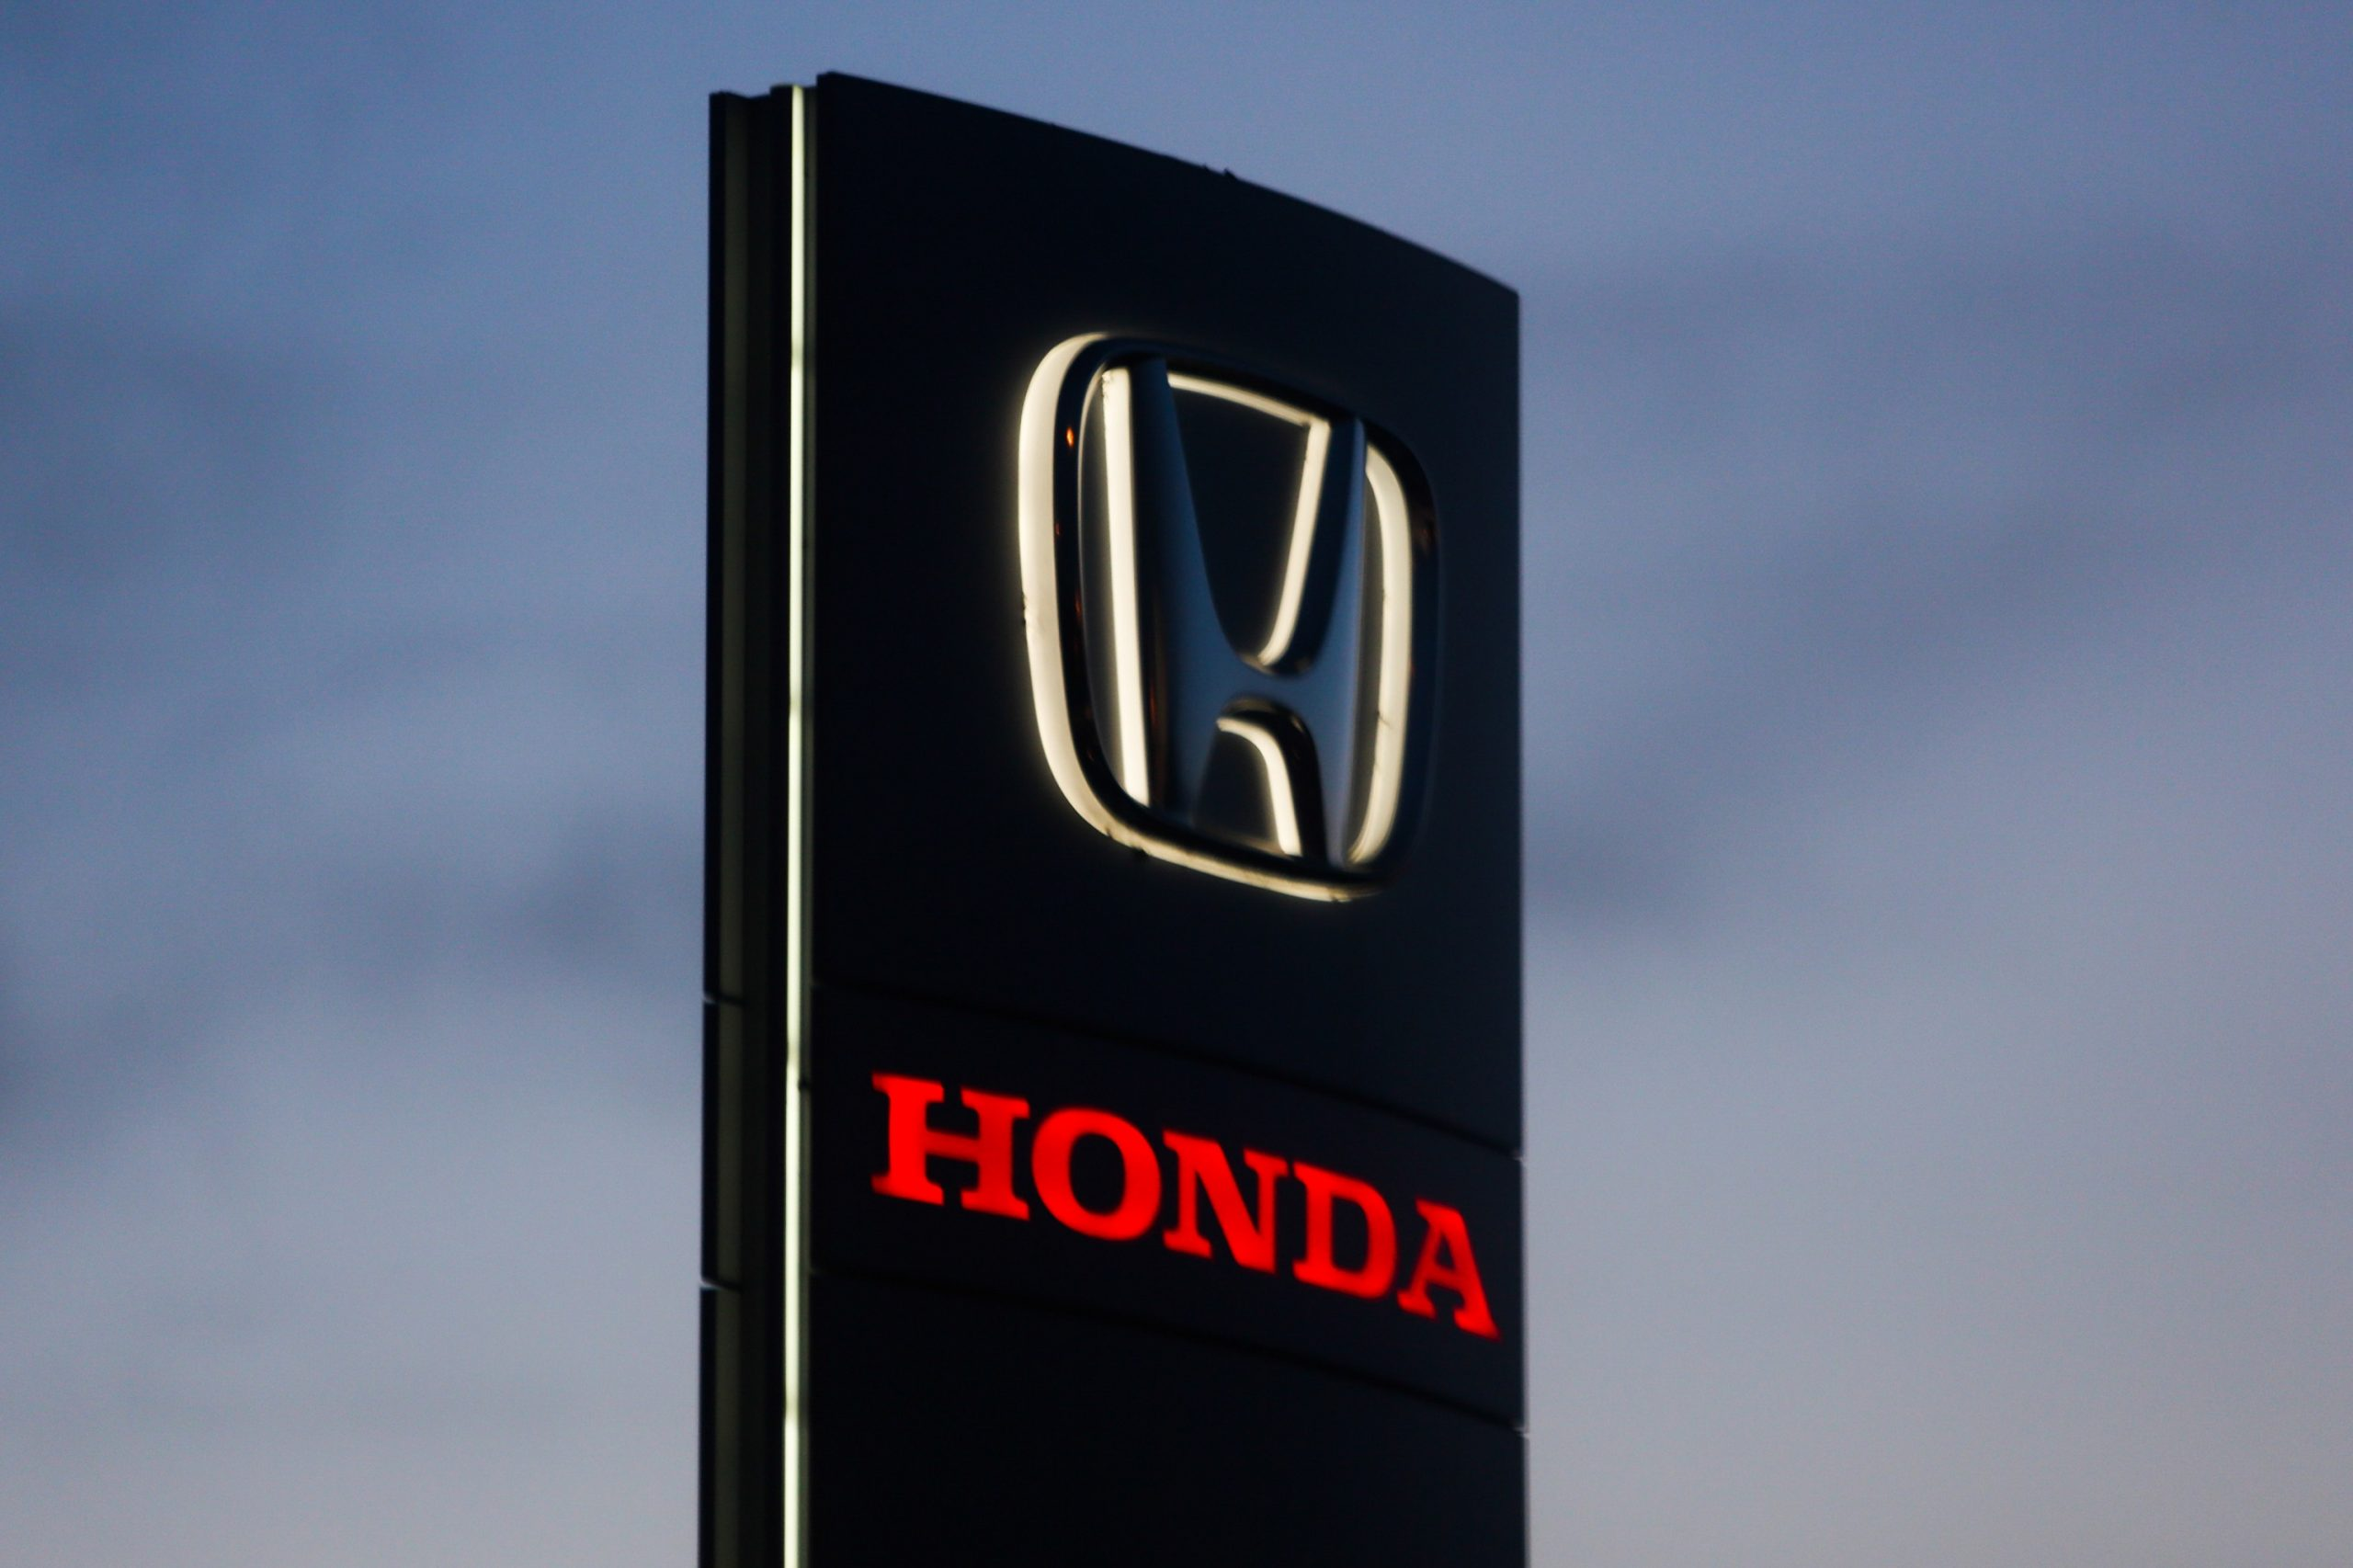 A red Honda Logo on a sign in Poland